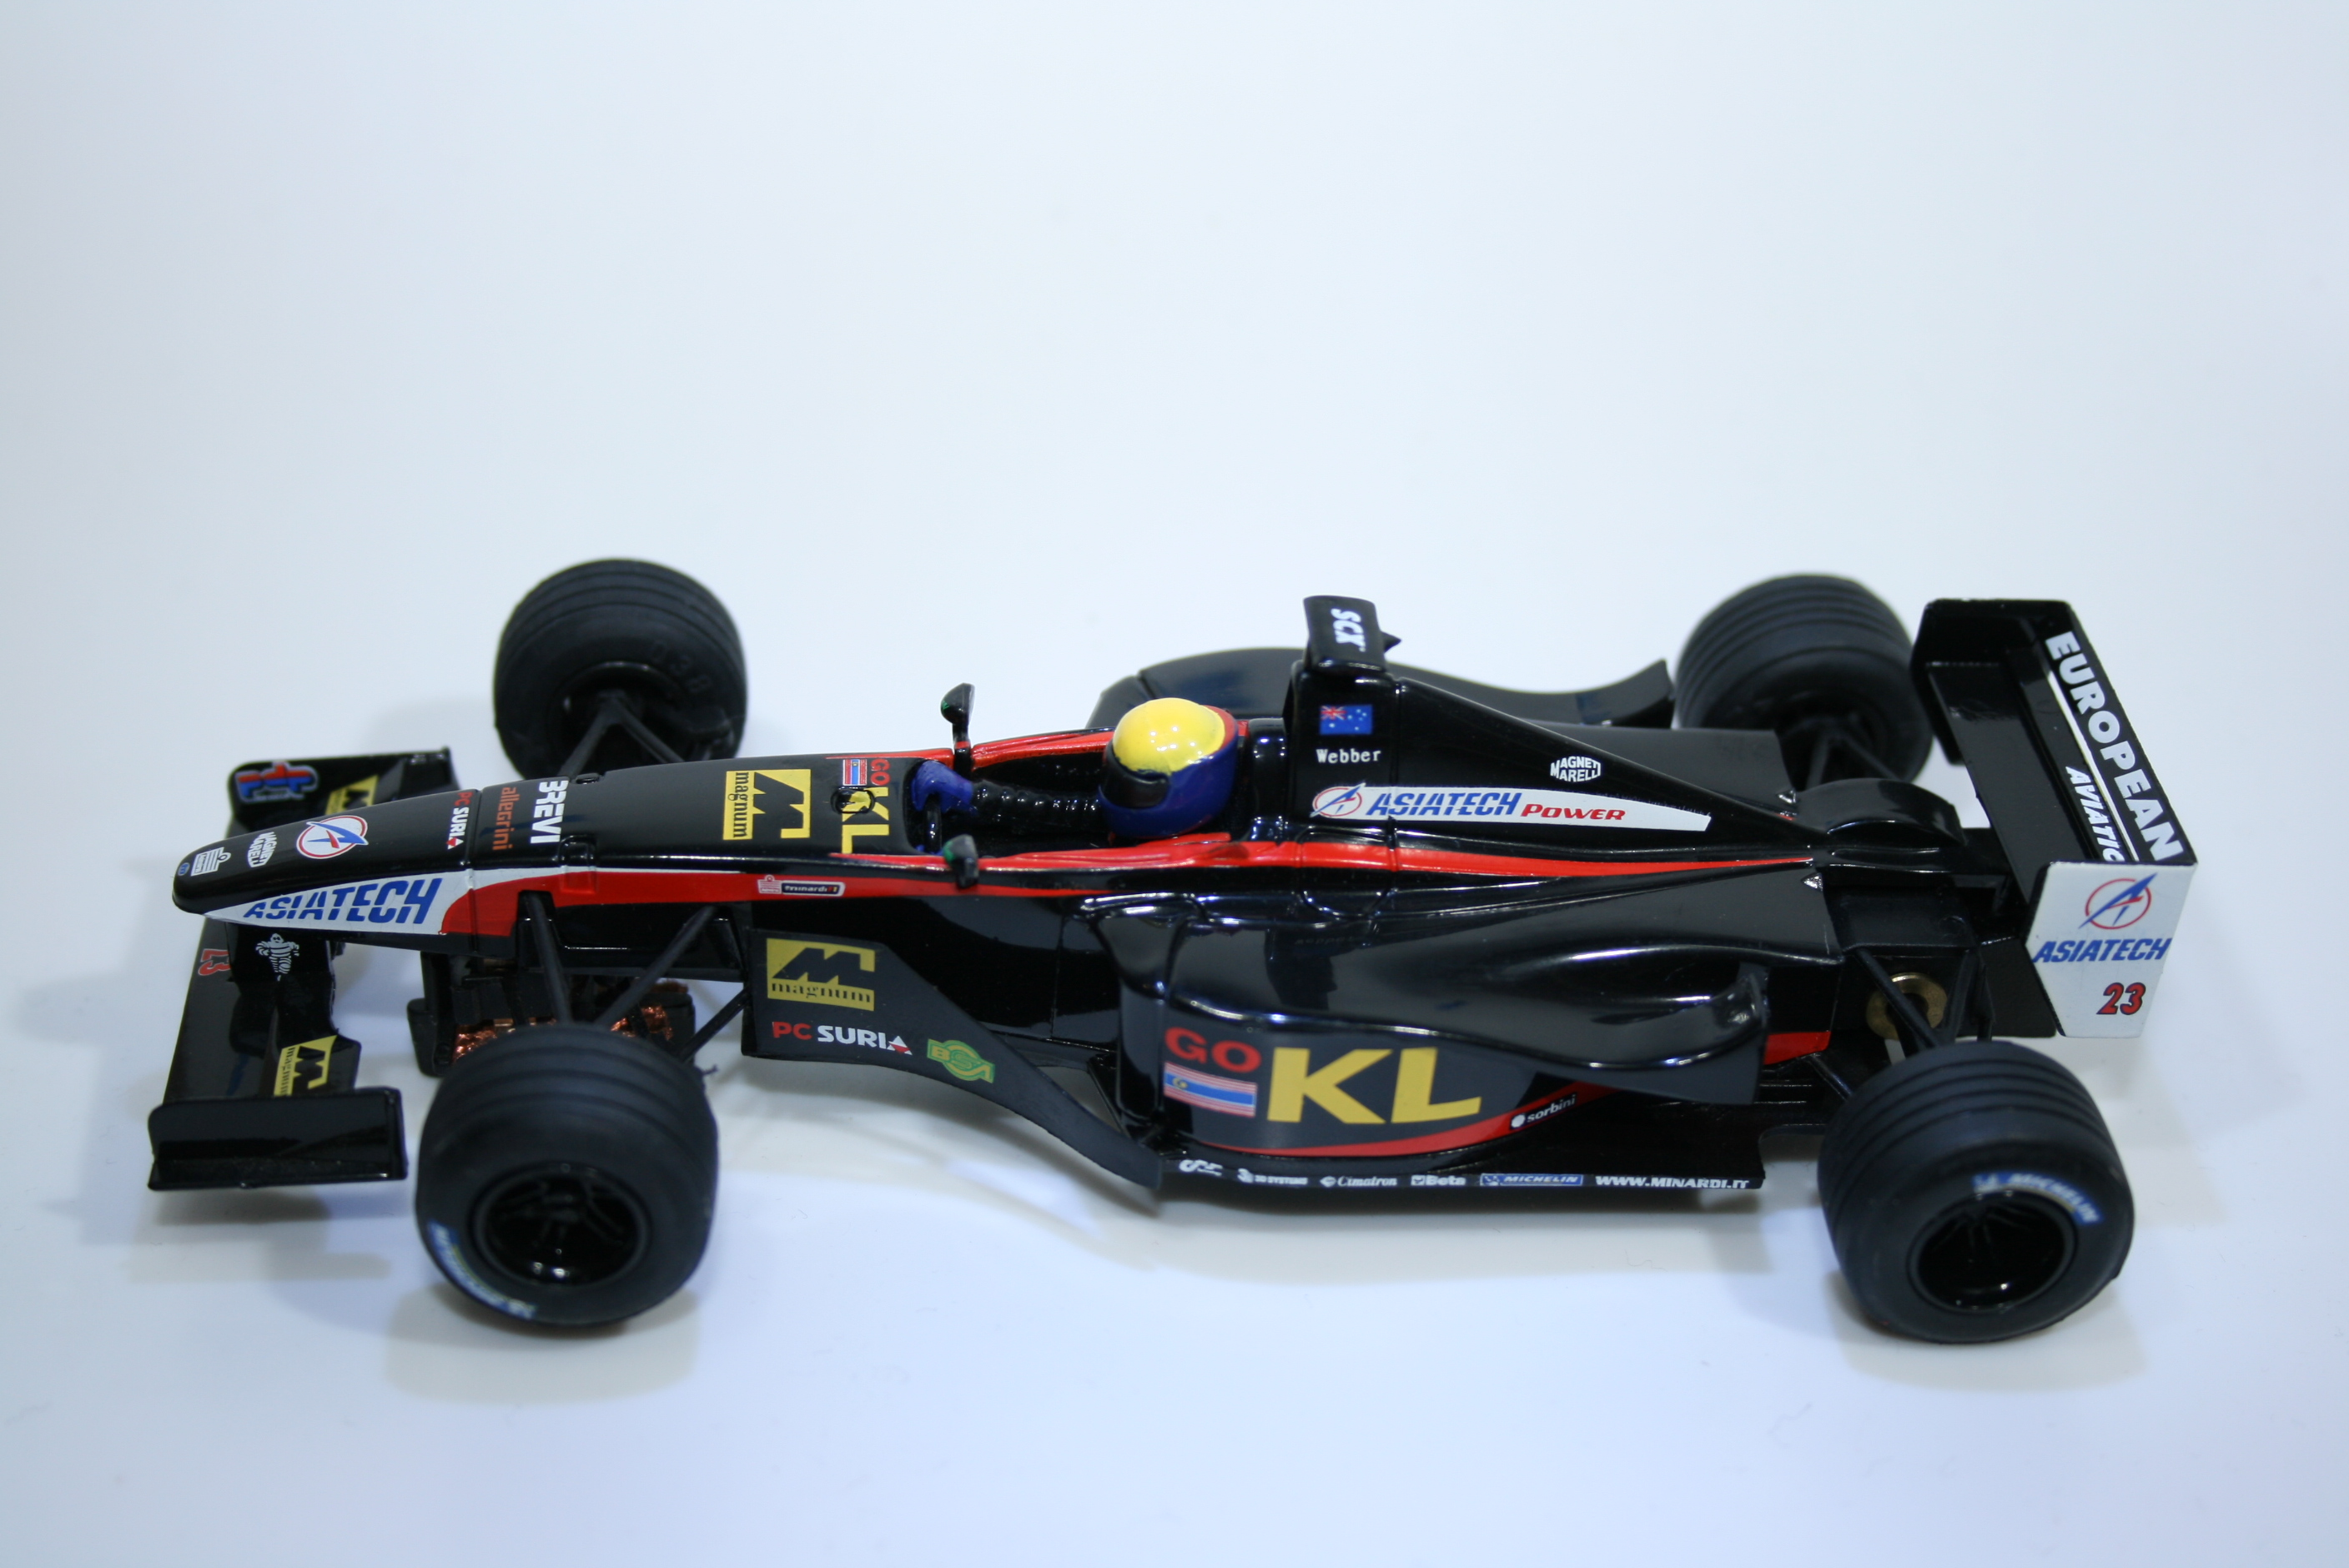 96 Minardi PS02 2002 M Webber SCX 6107 2002 Boxed